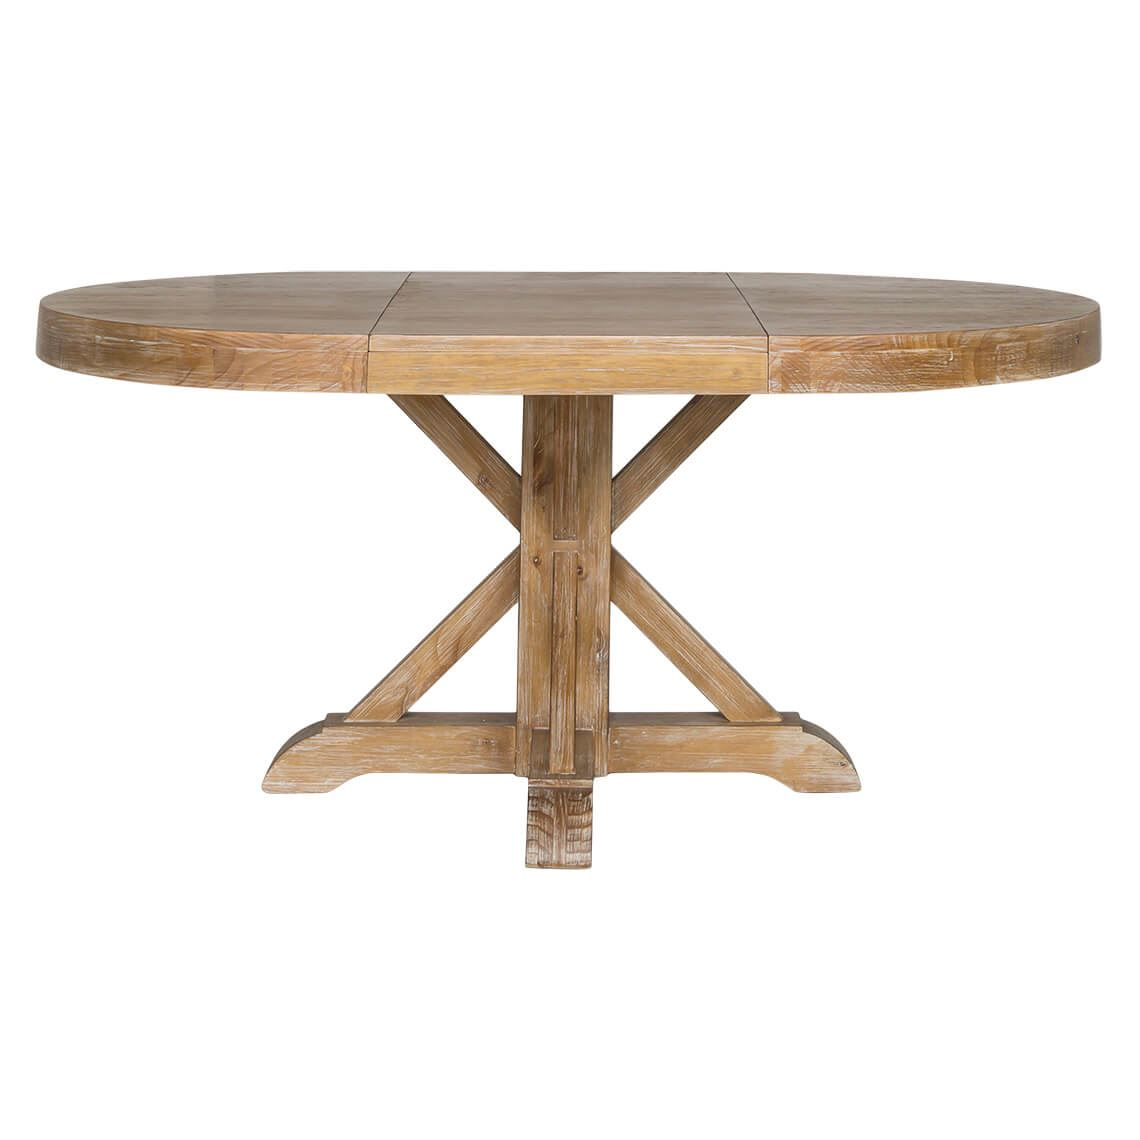 Thorne Extension Dining Table, Natural In 2019 | Extension Pertaining To Current Black Olive Hart Reclaimed Pedestal Extending Dining Tables (View 3 of 25)